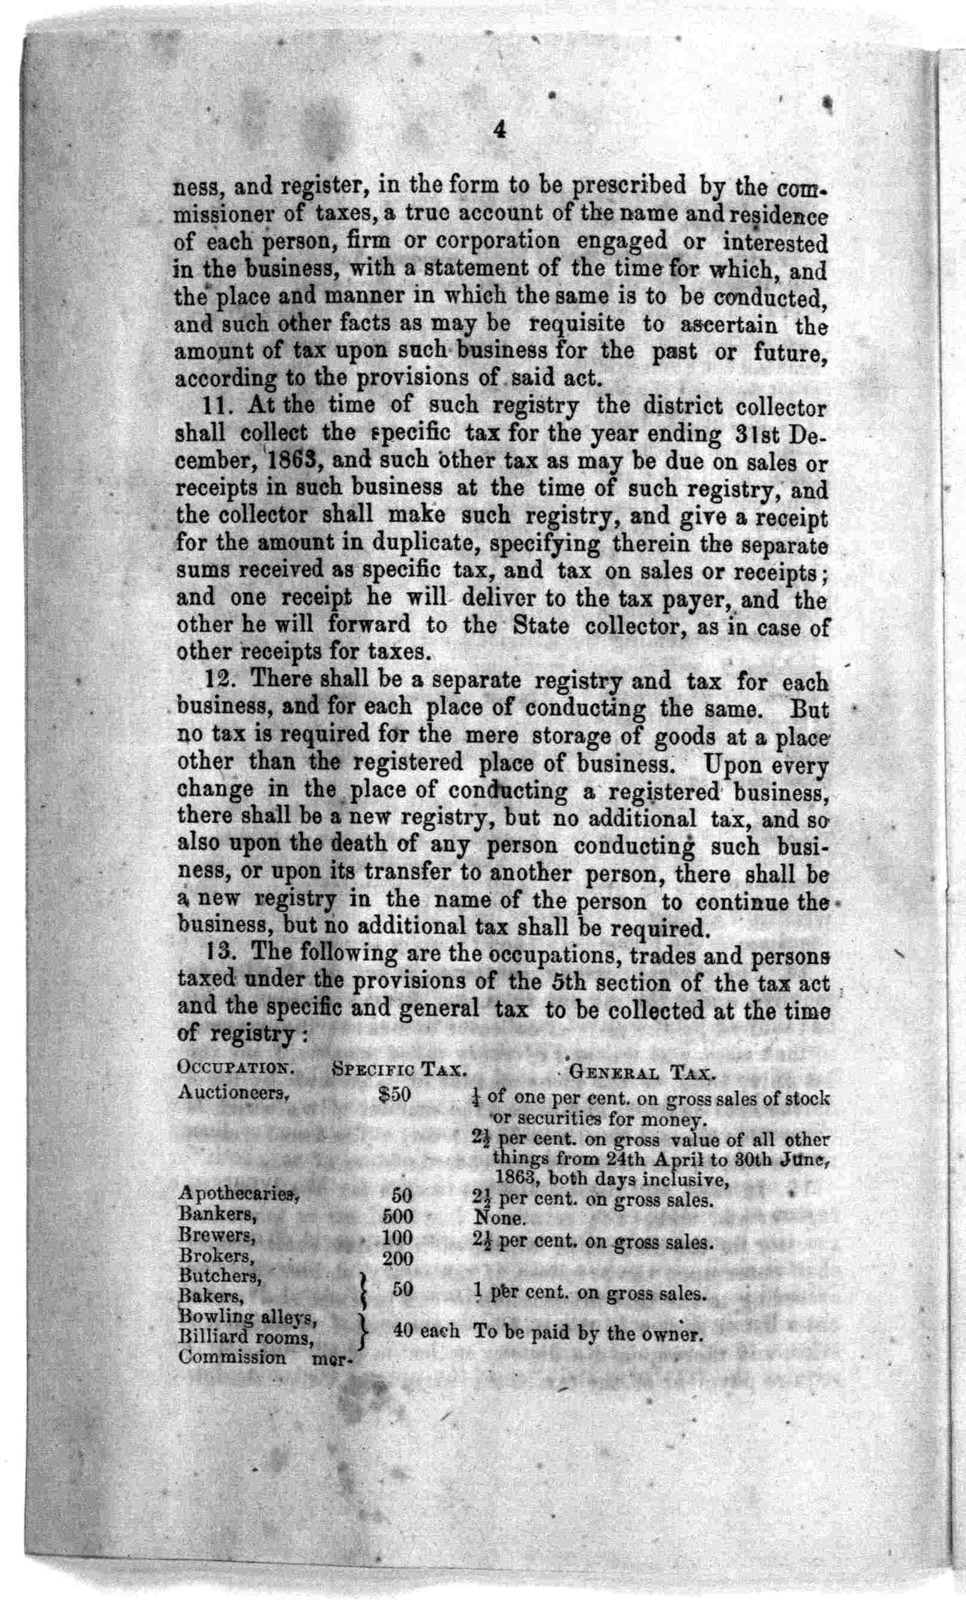 Instructions for collectors of taxes ... Richmond, May 15, 1863.